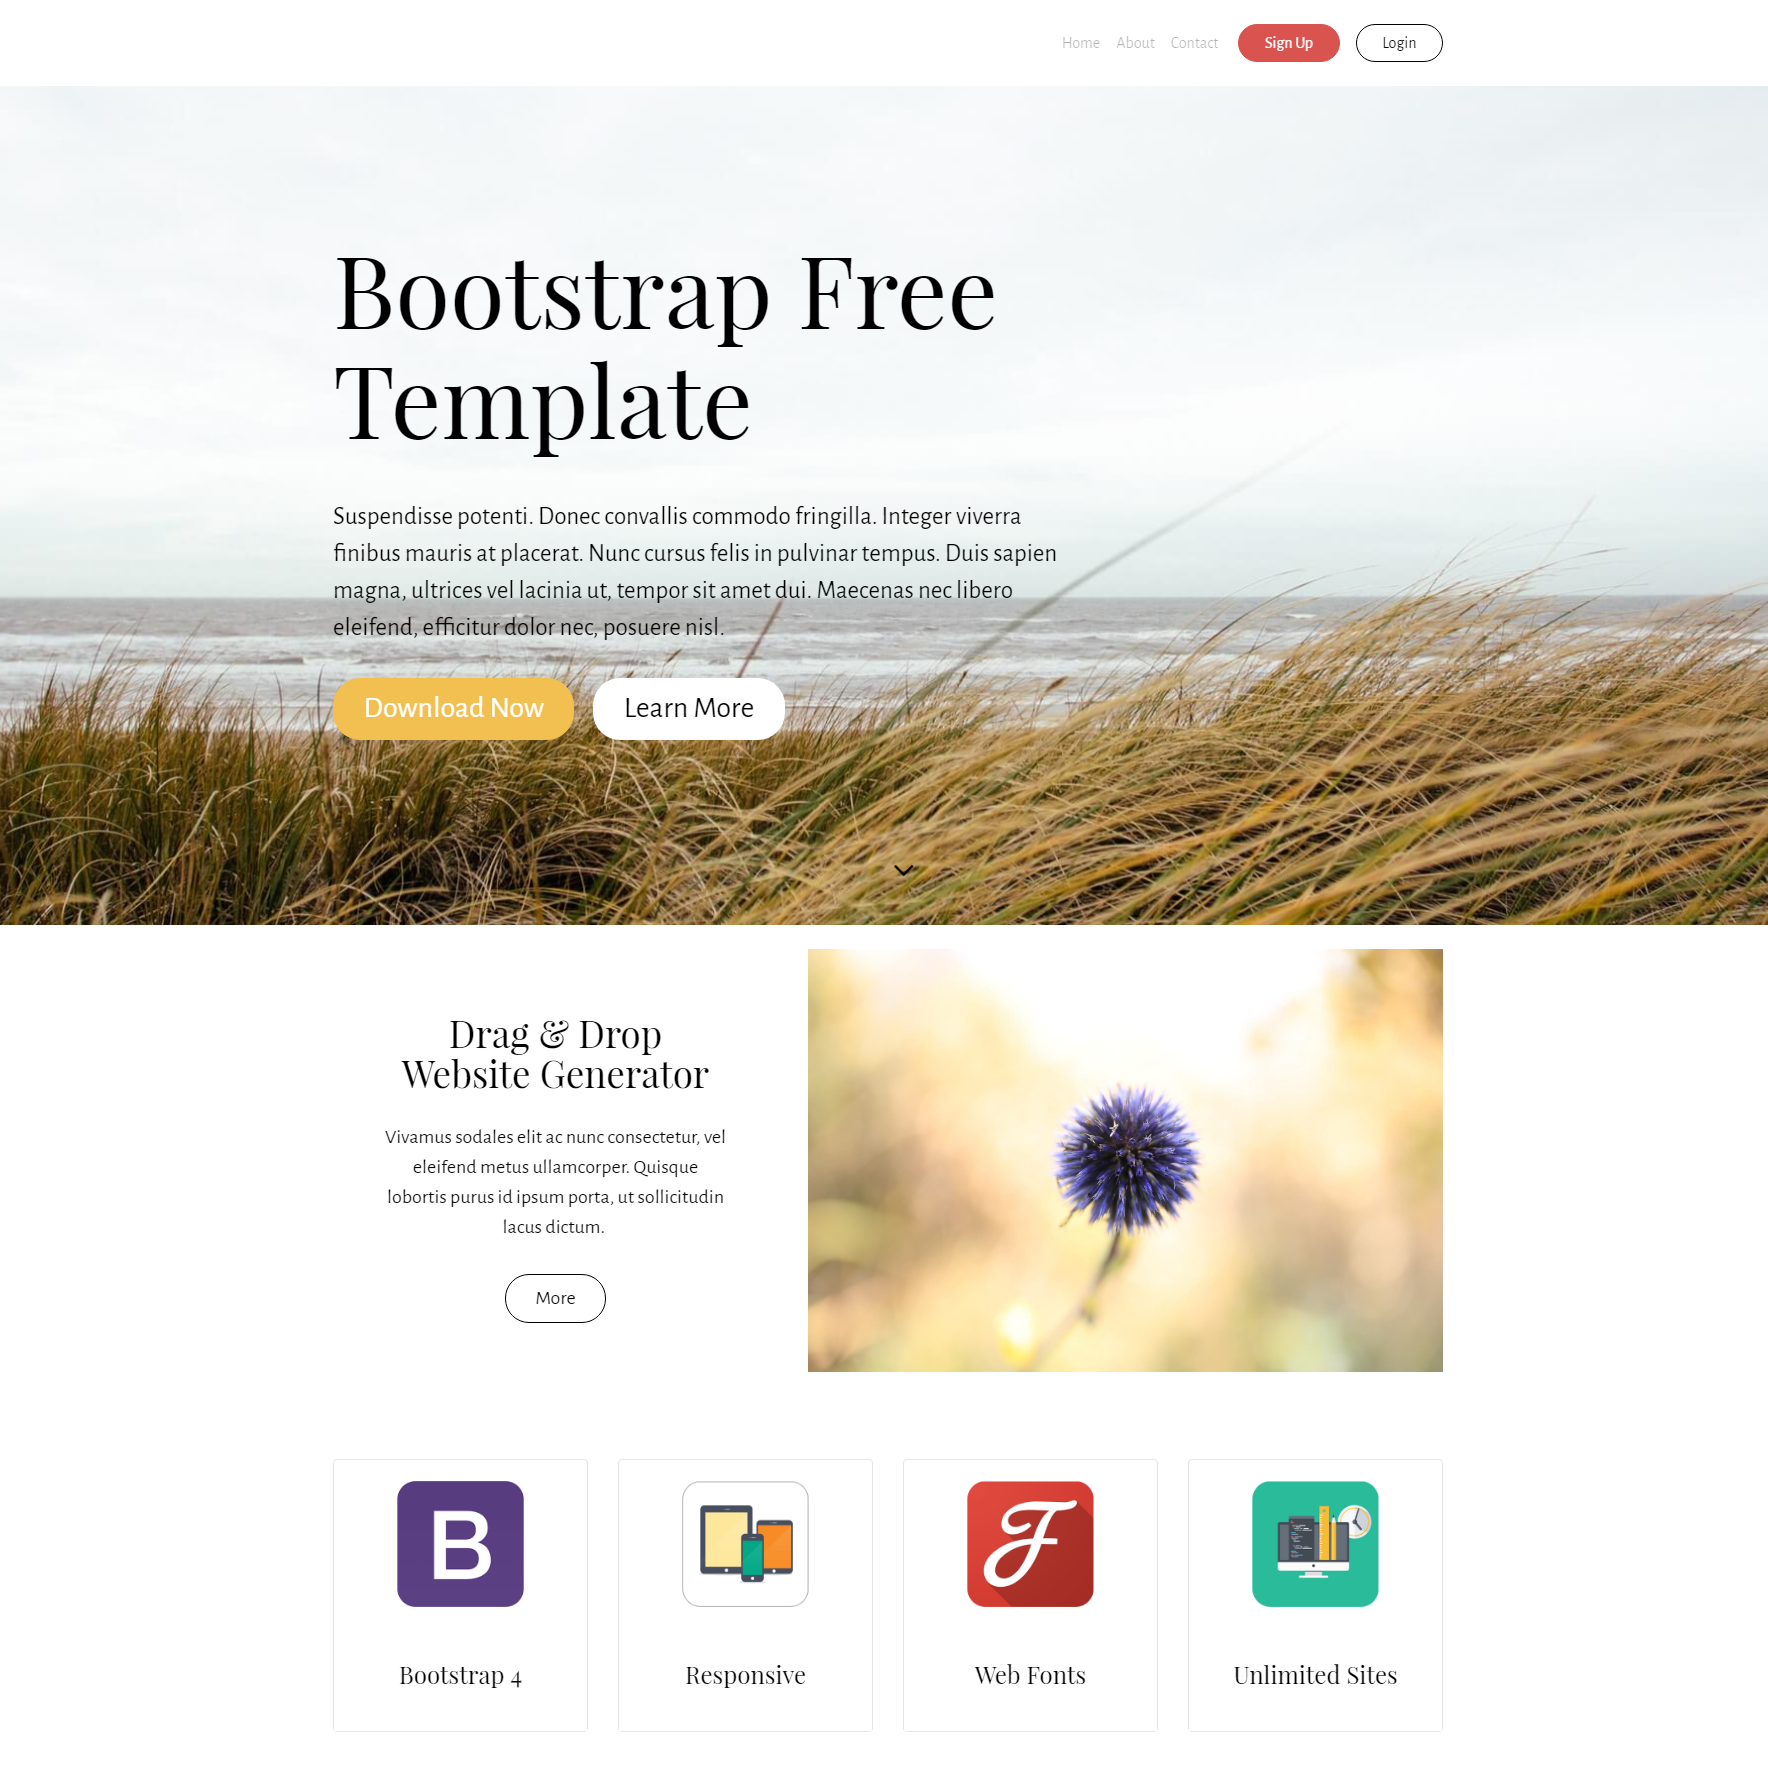 HTML5 Bootstrap Free Templates